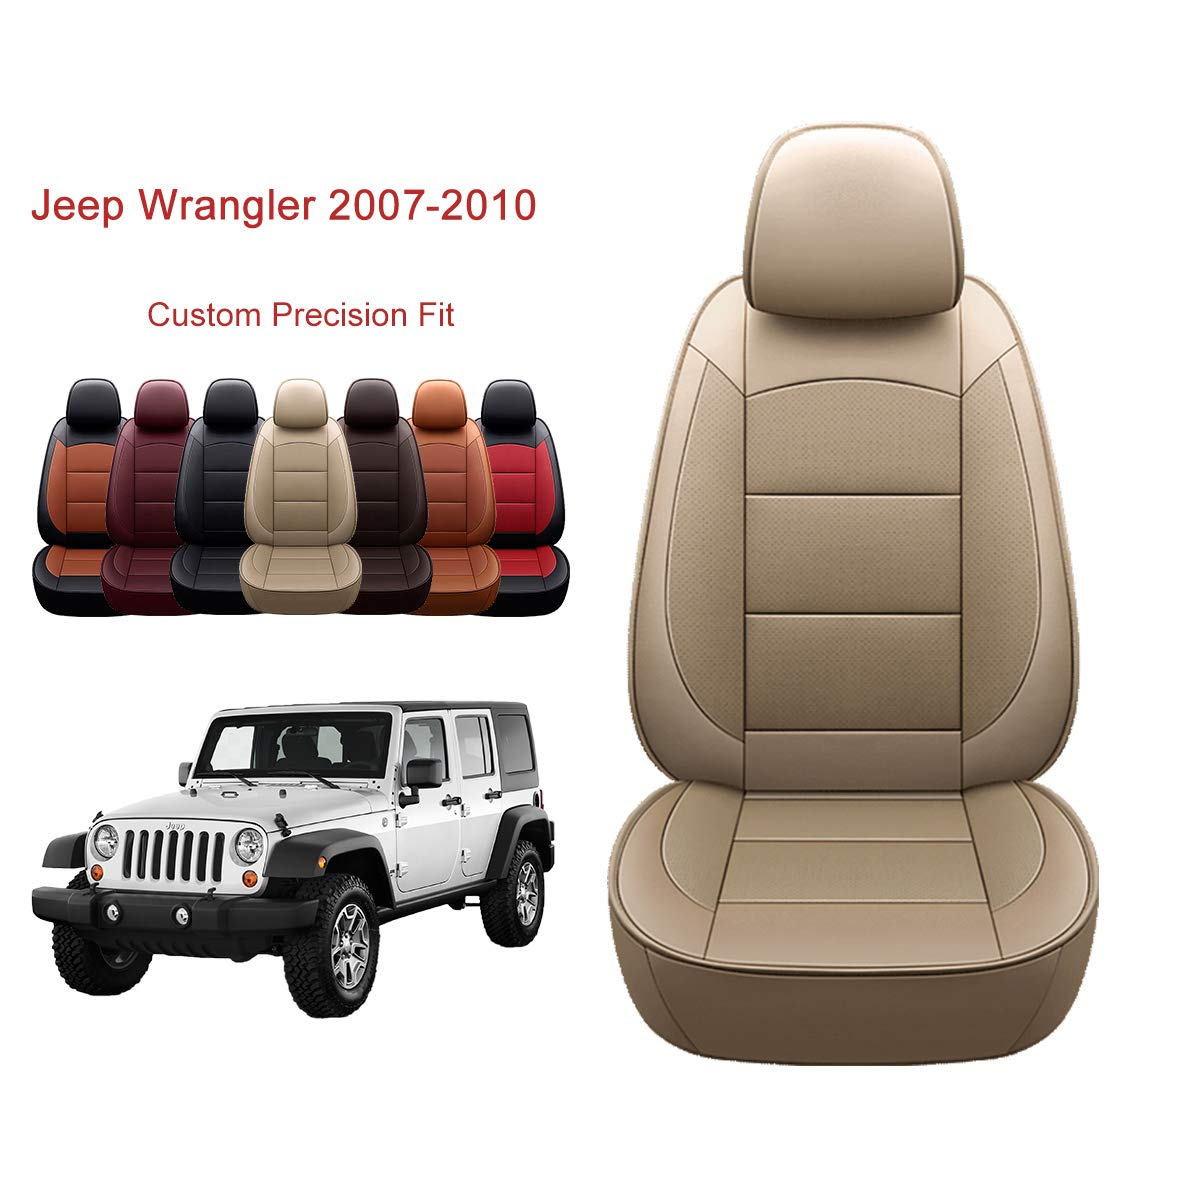 OASIS AUTO Jeep Wrangler JK 2007 2008 2009 2010 Unlimited, Sahara, Sport, X, Custom Exact Fit PU Leather Seat Covers Accessories Full Set (4DR, TAN)